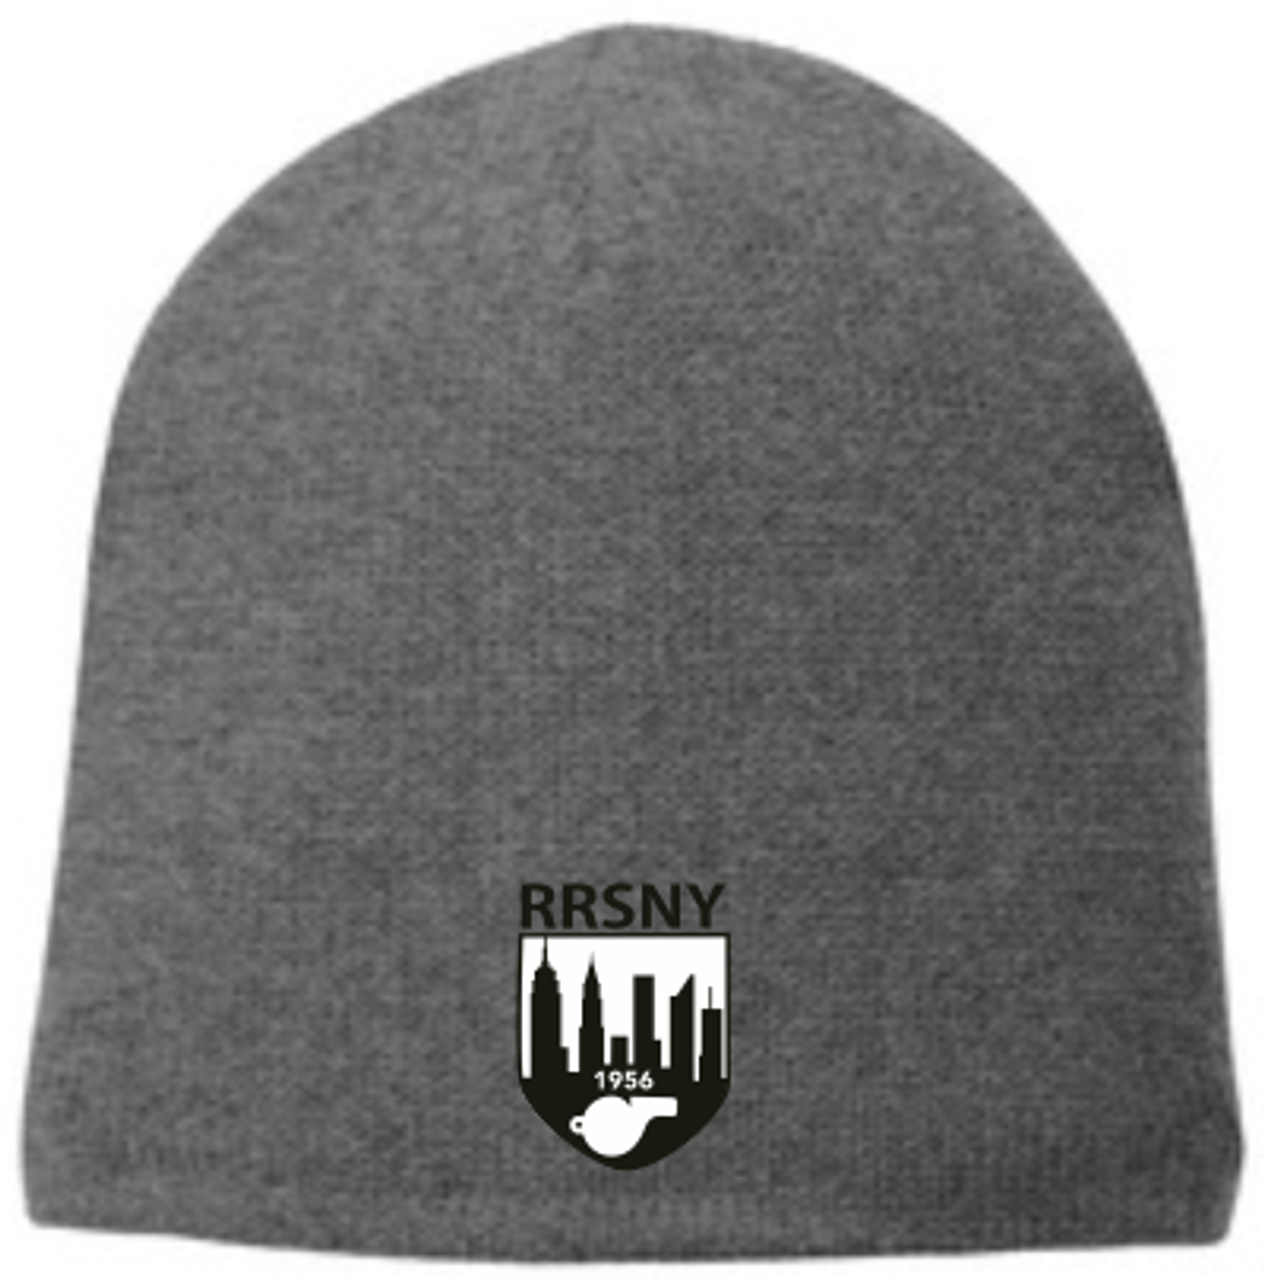 RRSNY Fleece-Lined Beanie, Oxford Gray